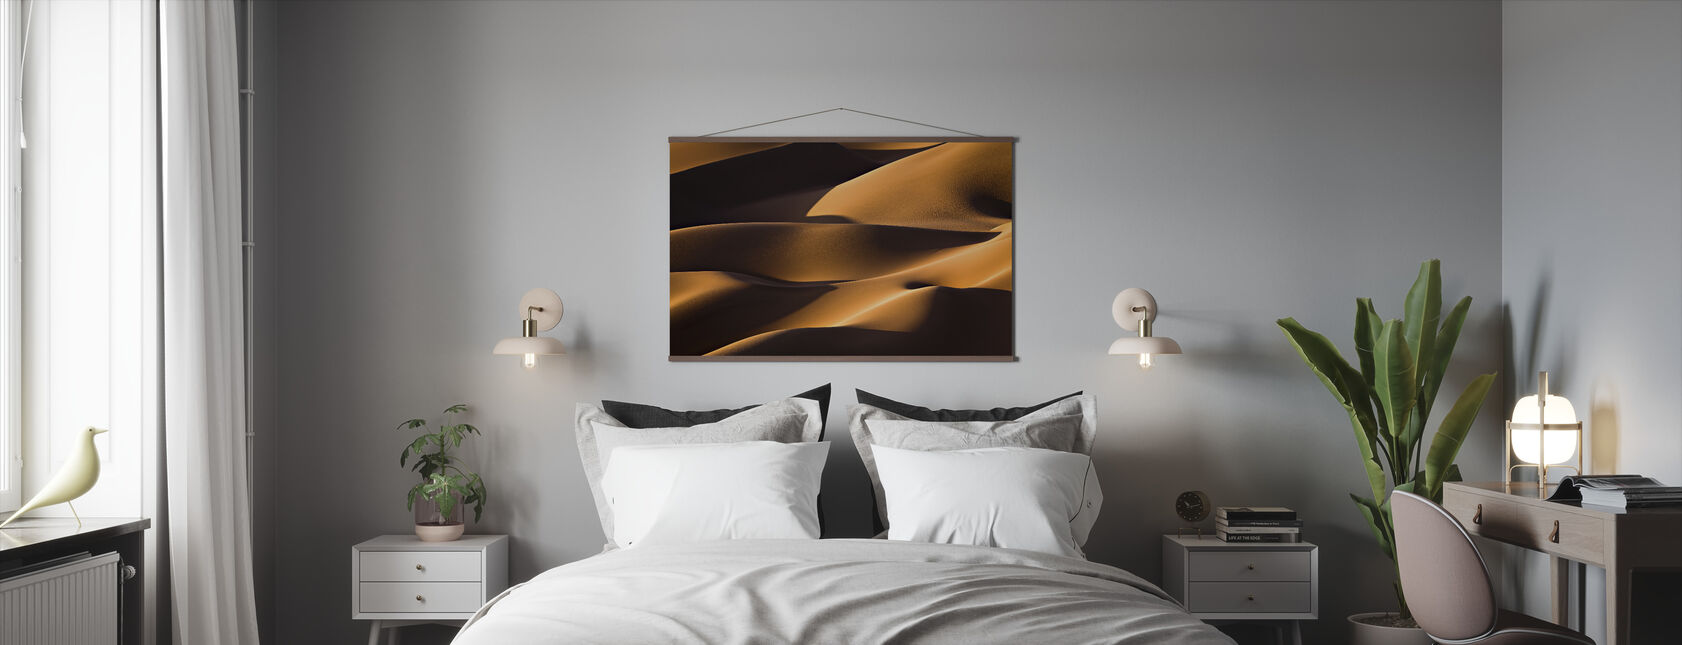 Light and Shadow - Poster - Bedroom